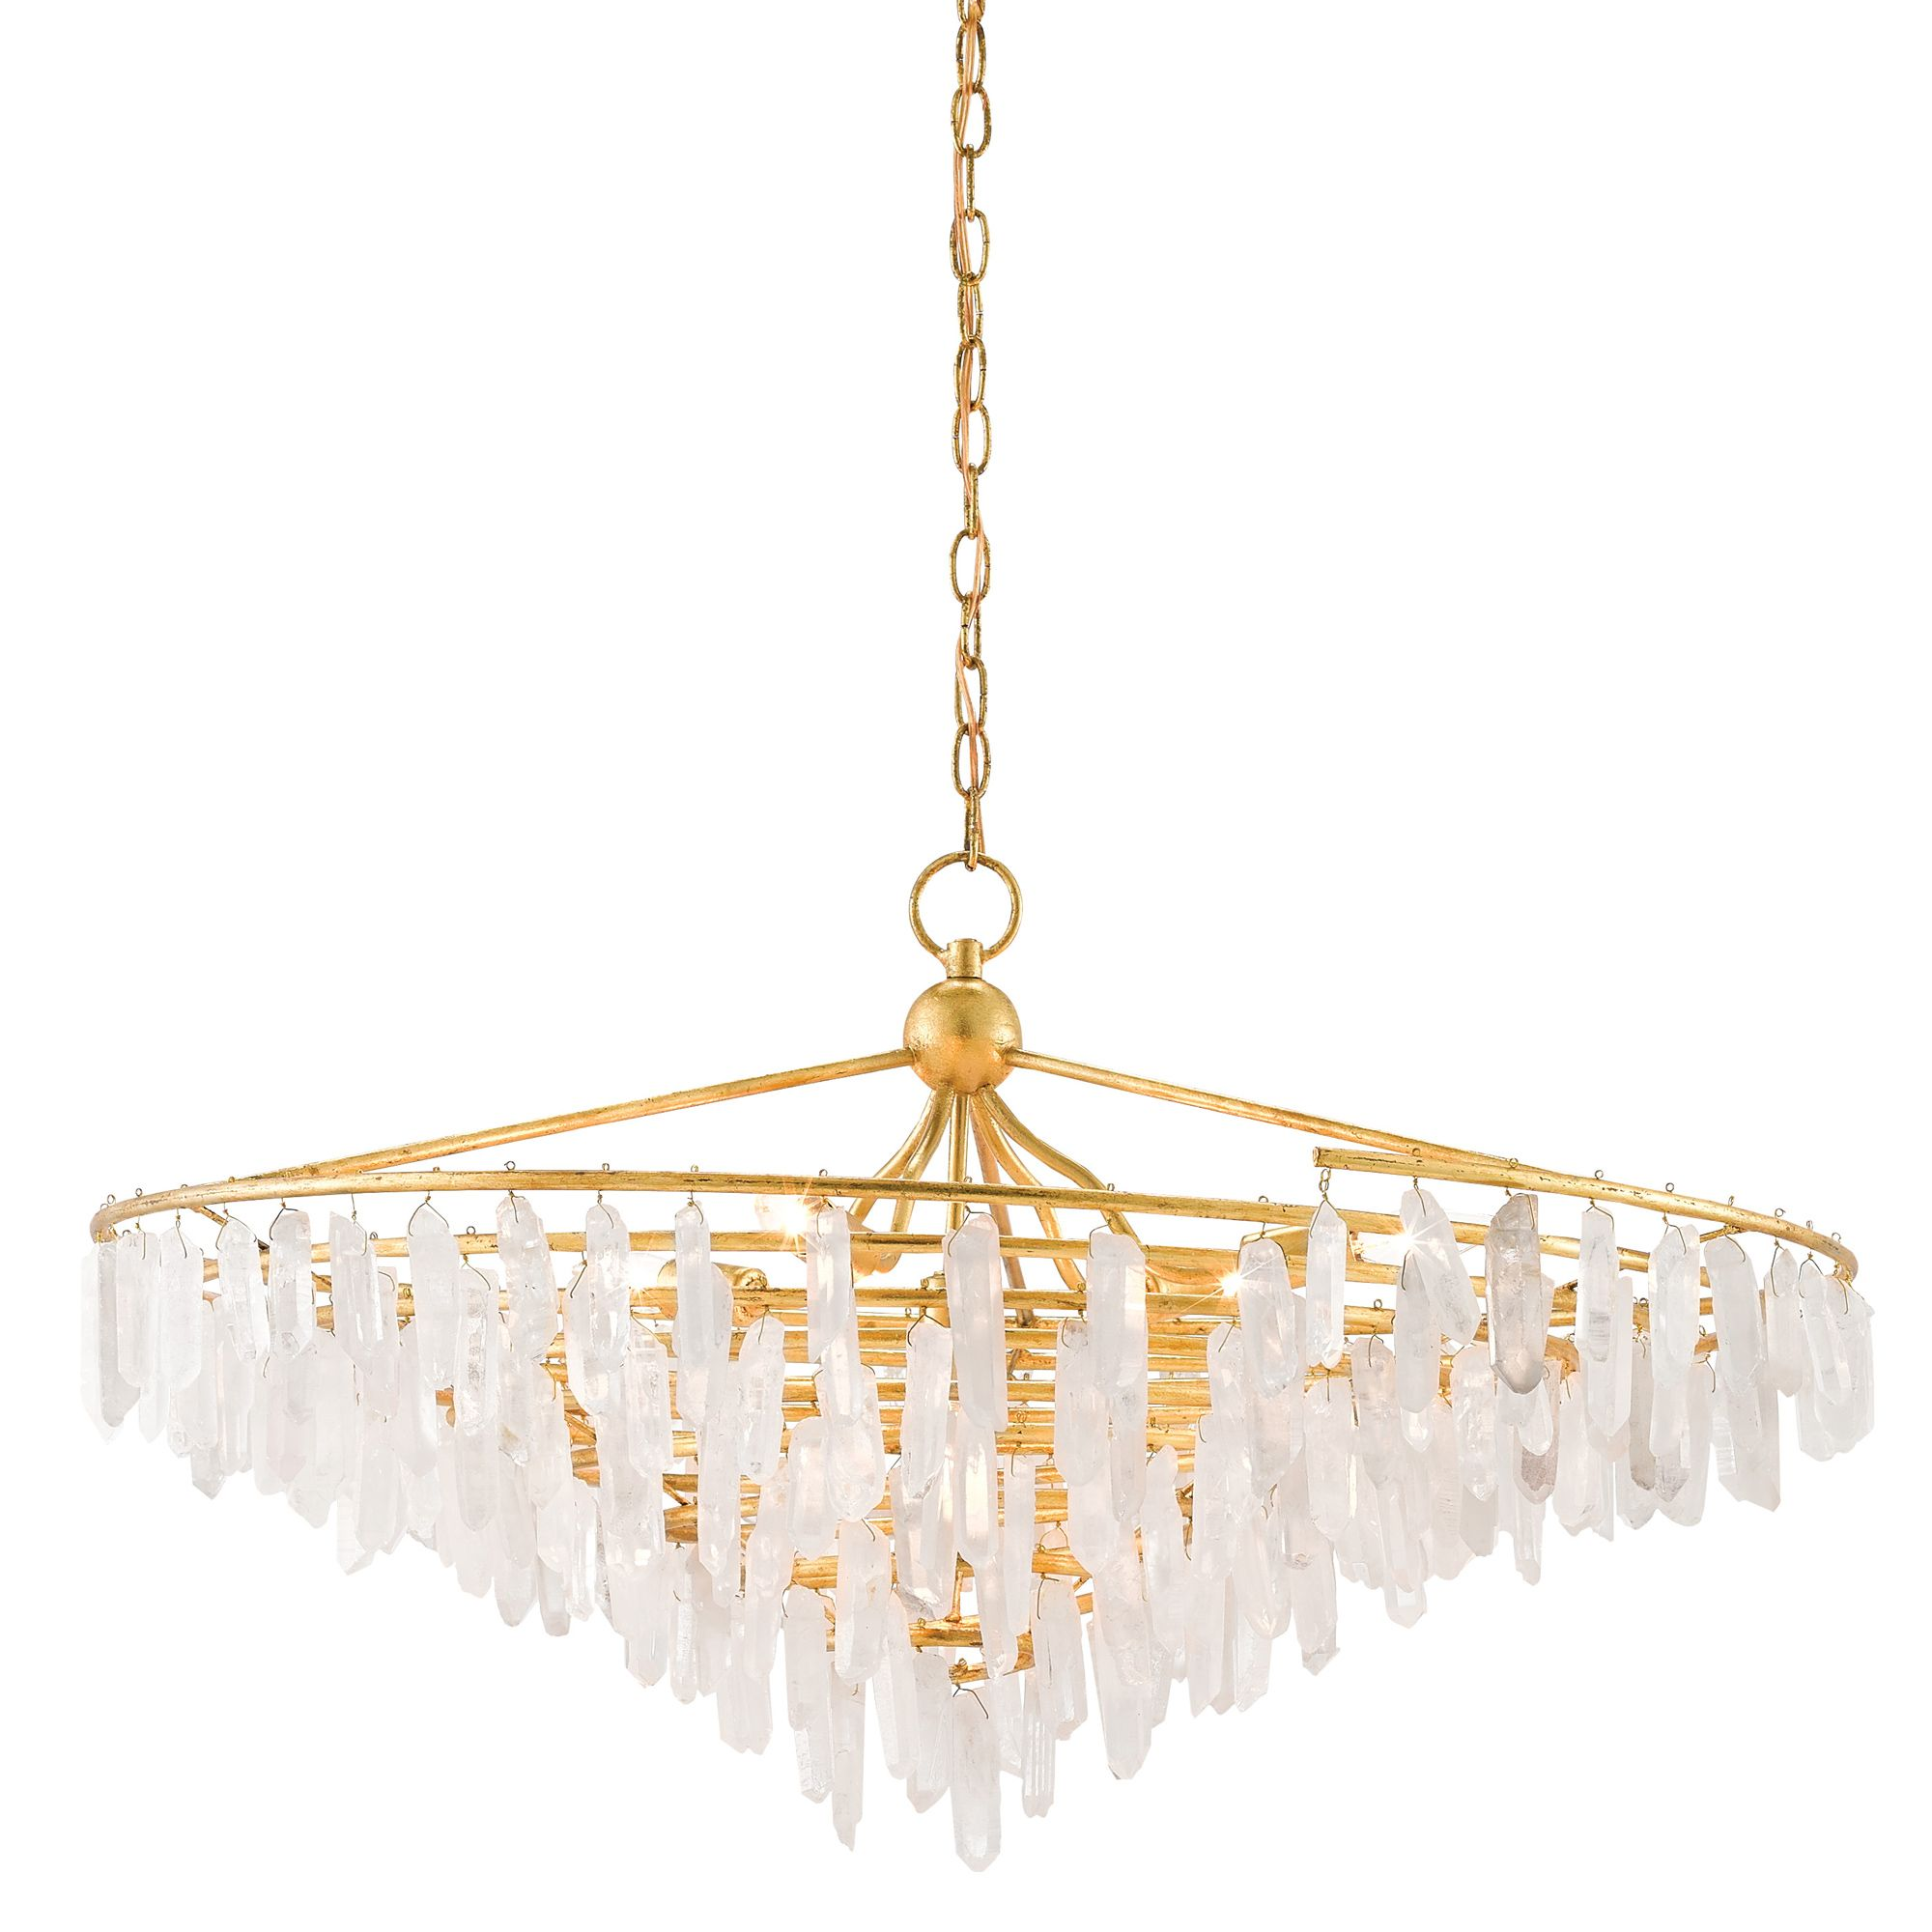 Tempest Chandelier - Currey And Company At Lightology